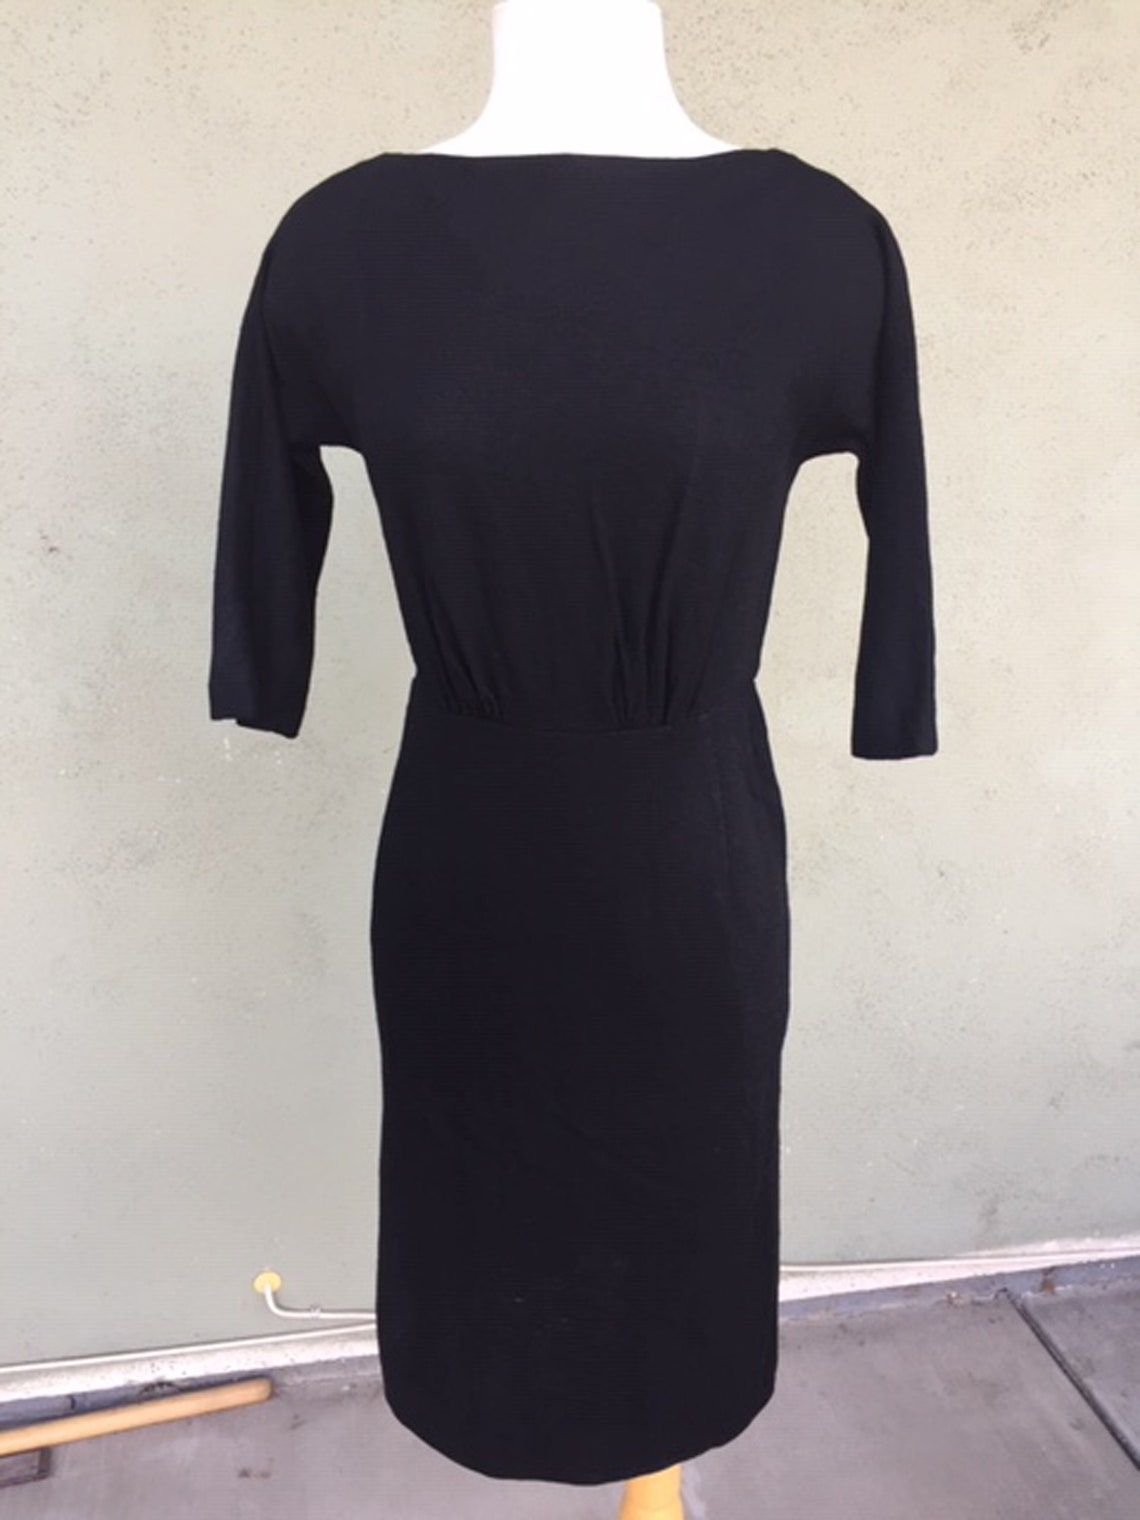 1950s Black Wiggle Dress with 3/4 Sleeves